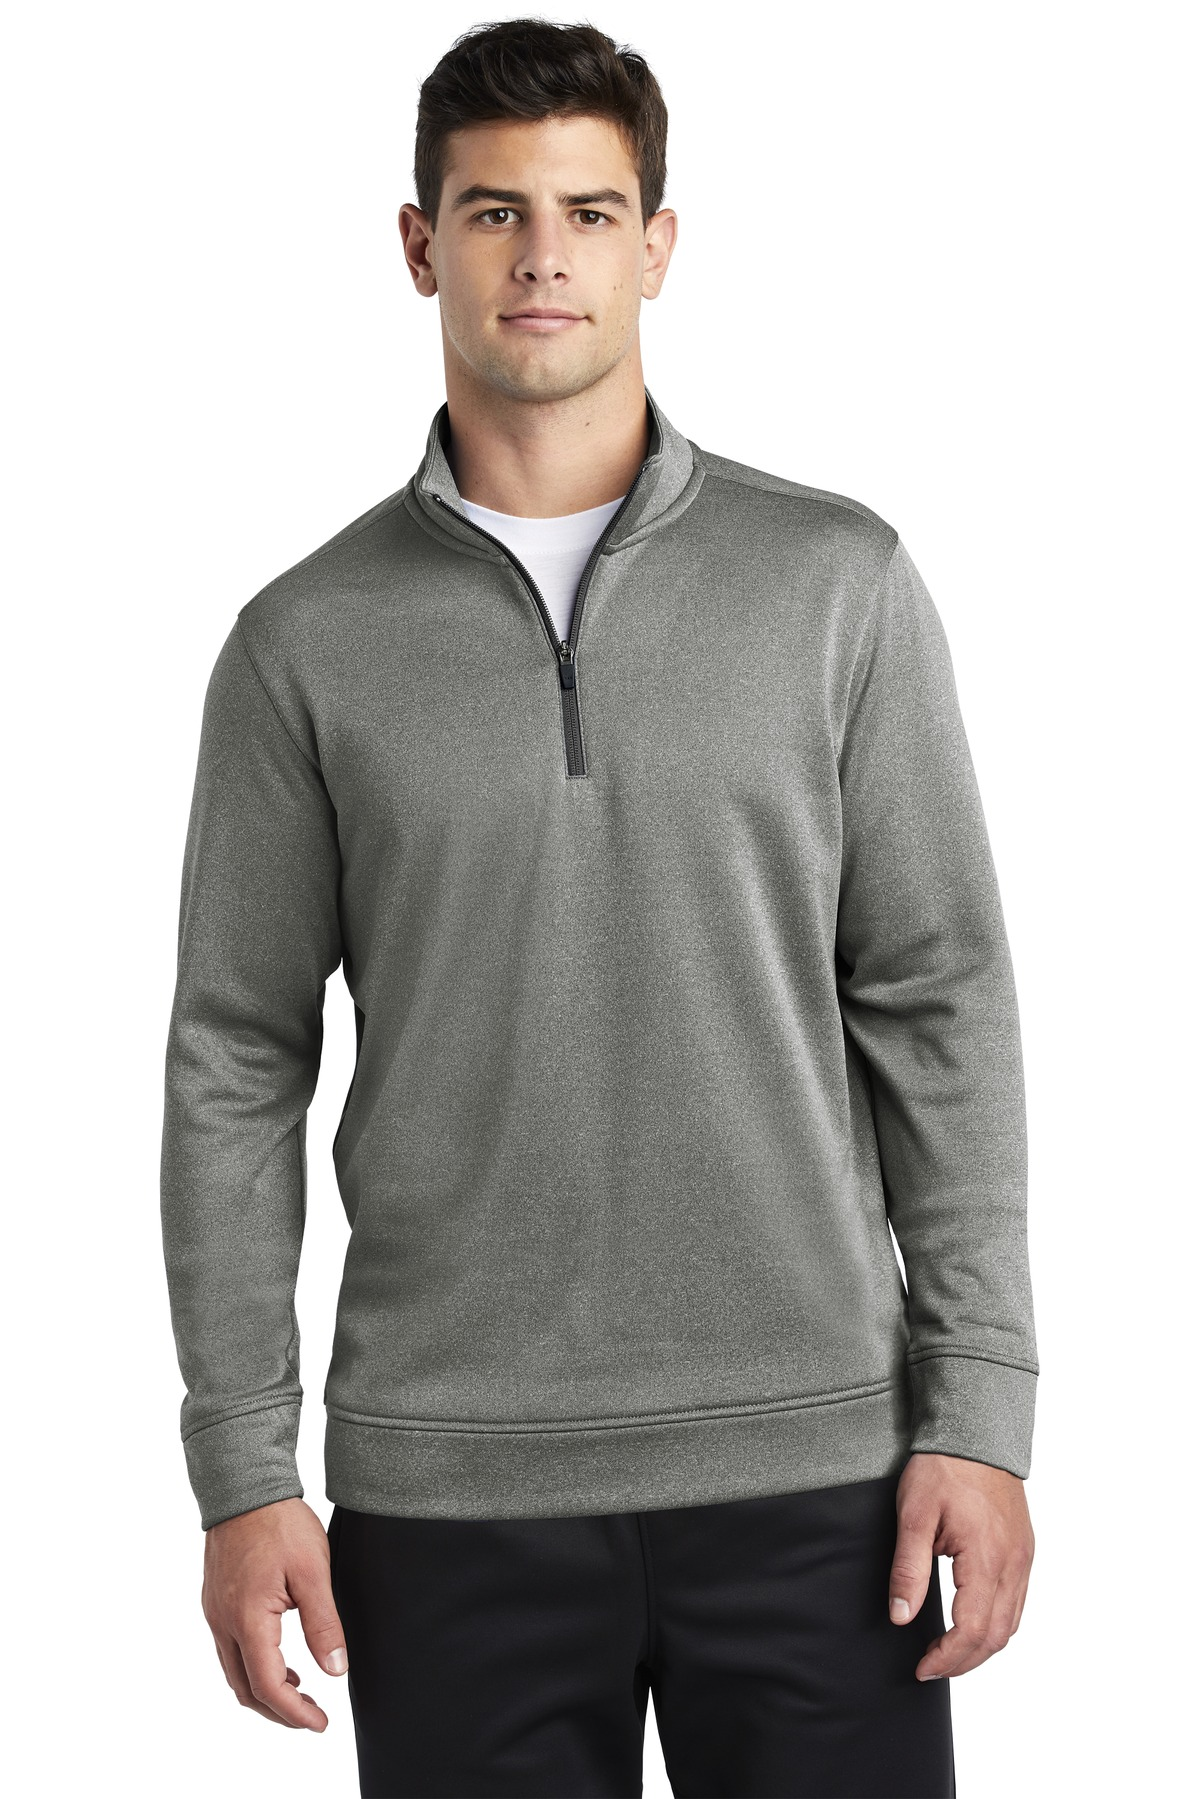 Sport-Tek  ®  PosiCharge  ®  Sport-Wick  ®  Heather Fleece 1/4-Zip Pullover. ST263 - Black Heather